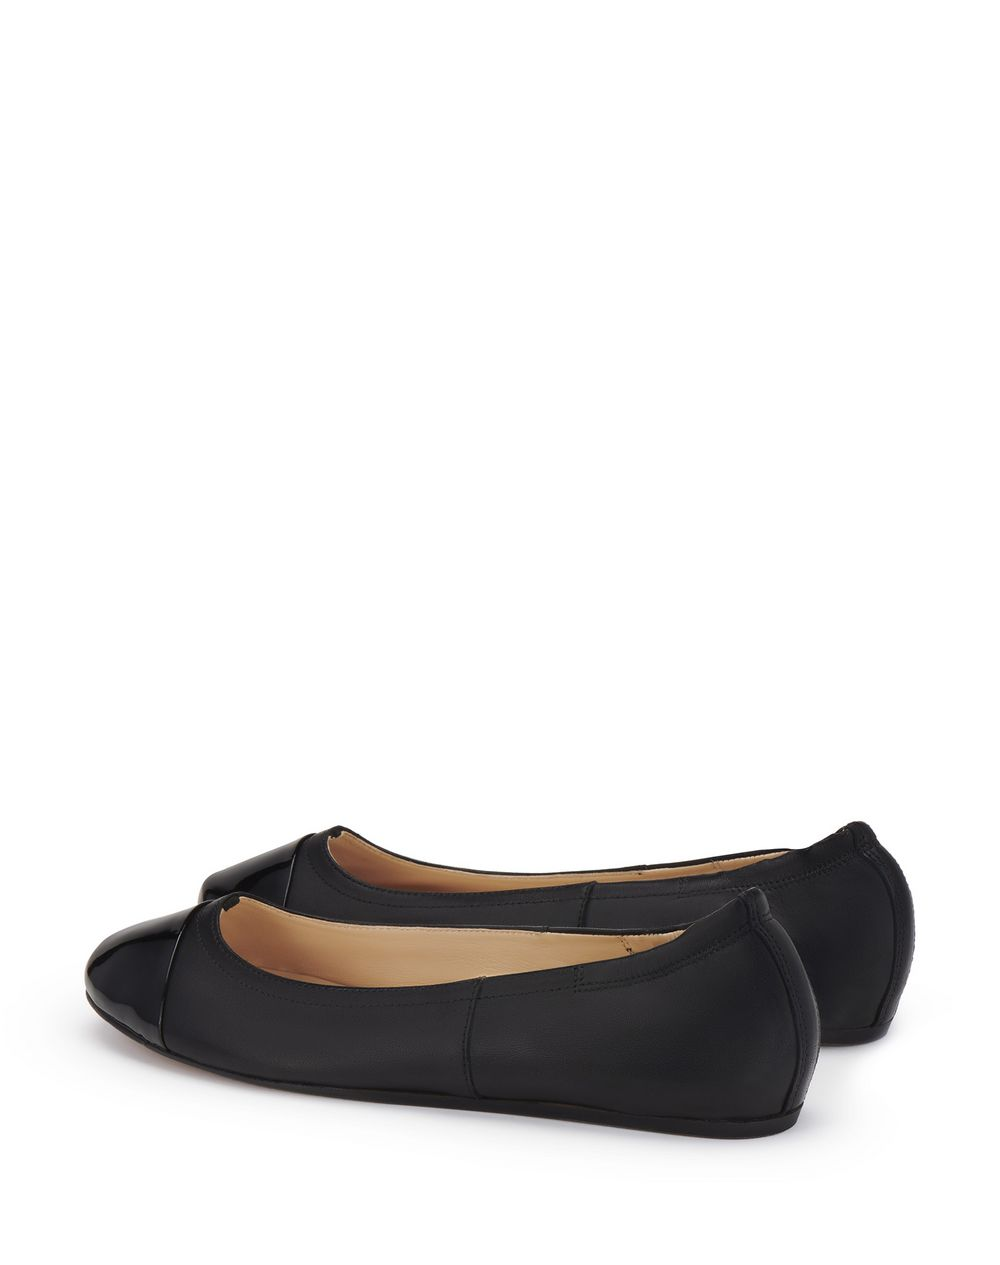 NAPPA AND PATENT CALFSKIN LEATHER BALLET FLATS - Lanvin